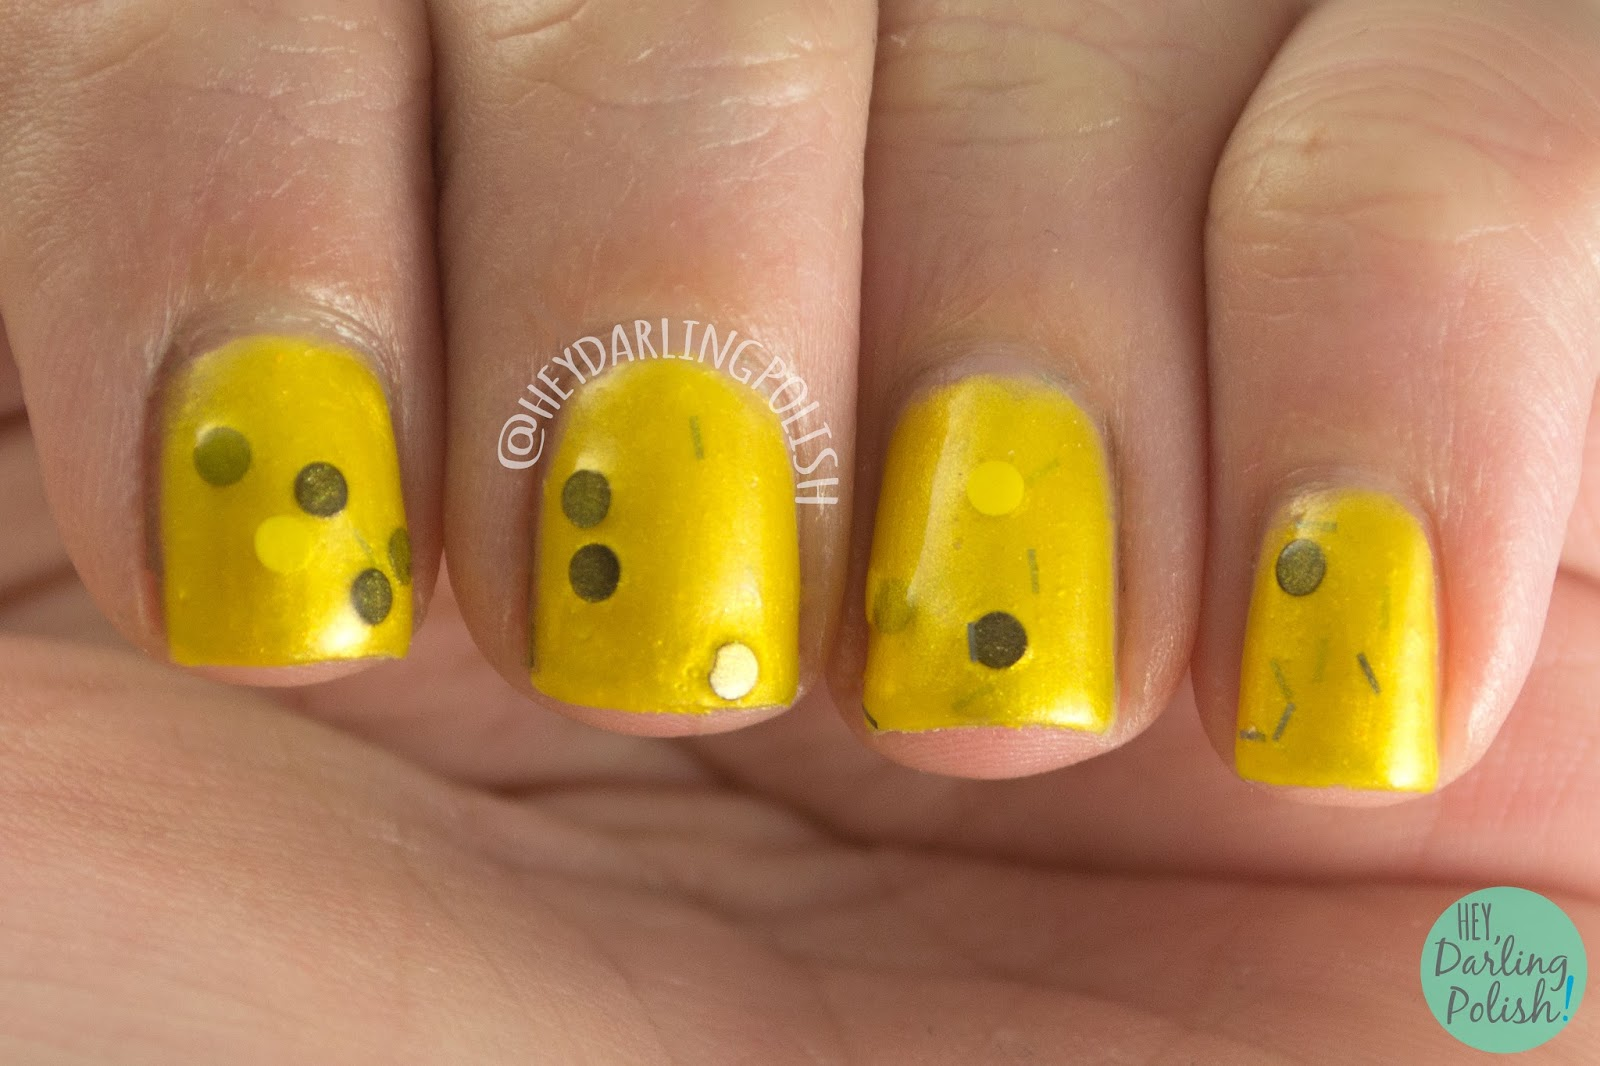 hufflepuff, just and loyal, yellow, nails, nail polish, polish, indie polish, indie, harry potter, fandom cosmetics, swatch, hey darling polish